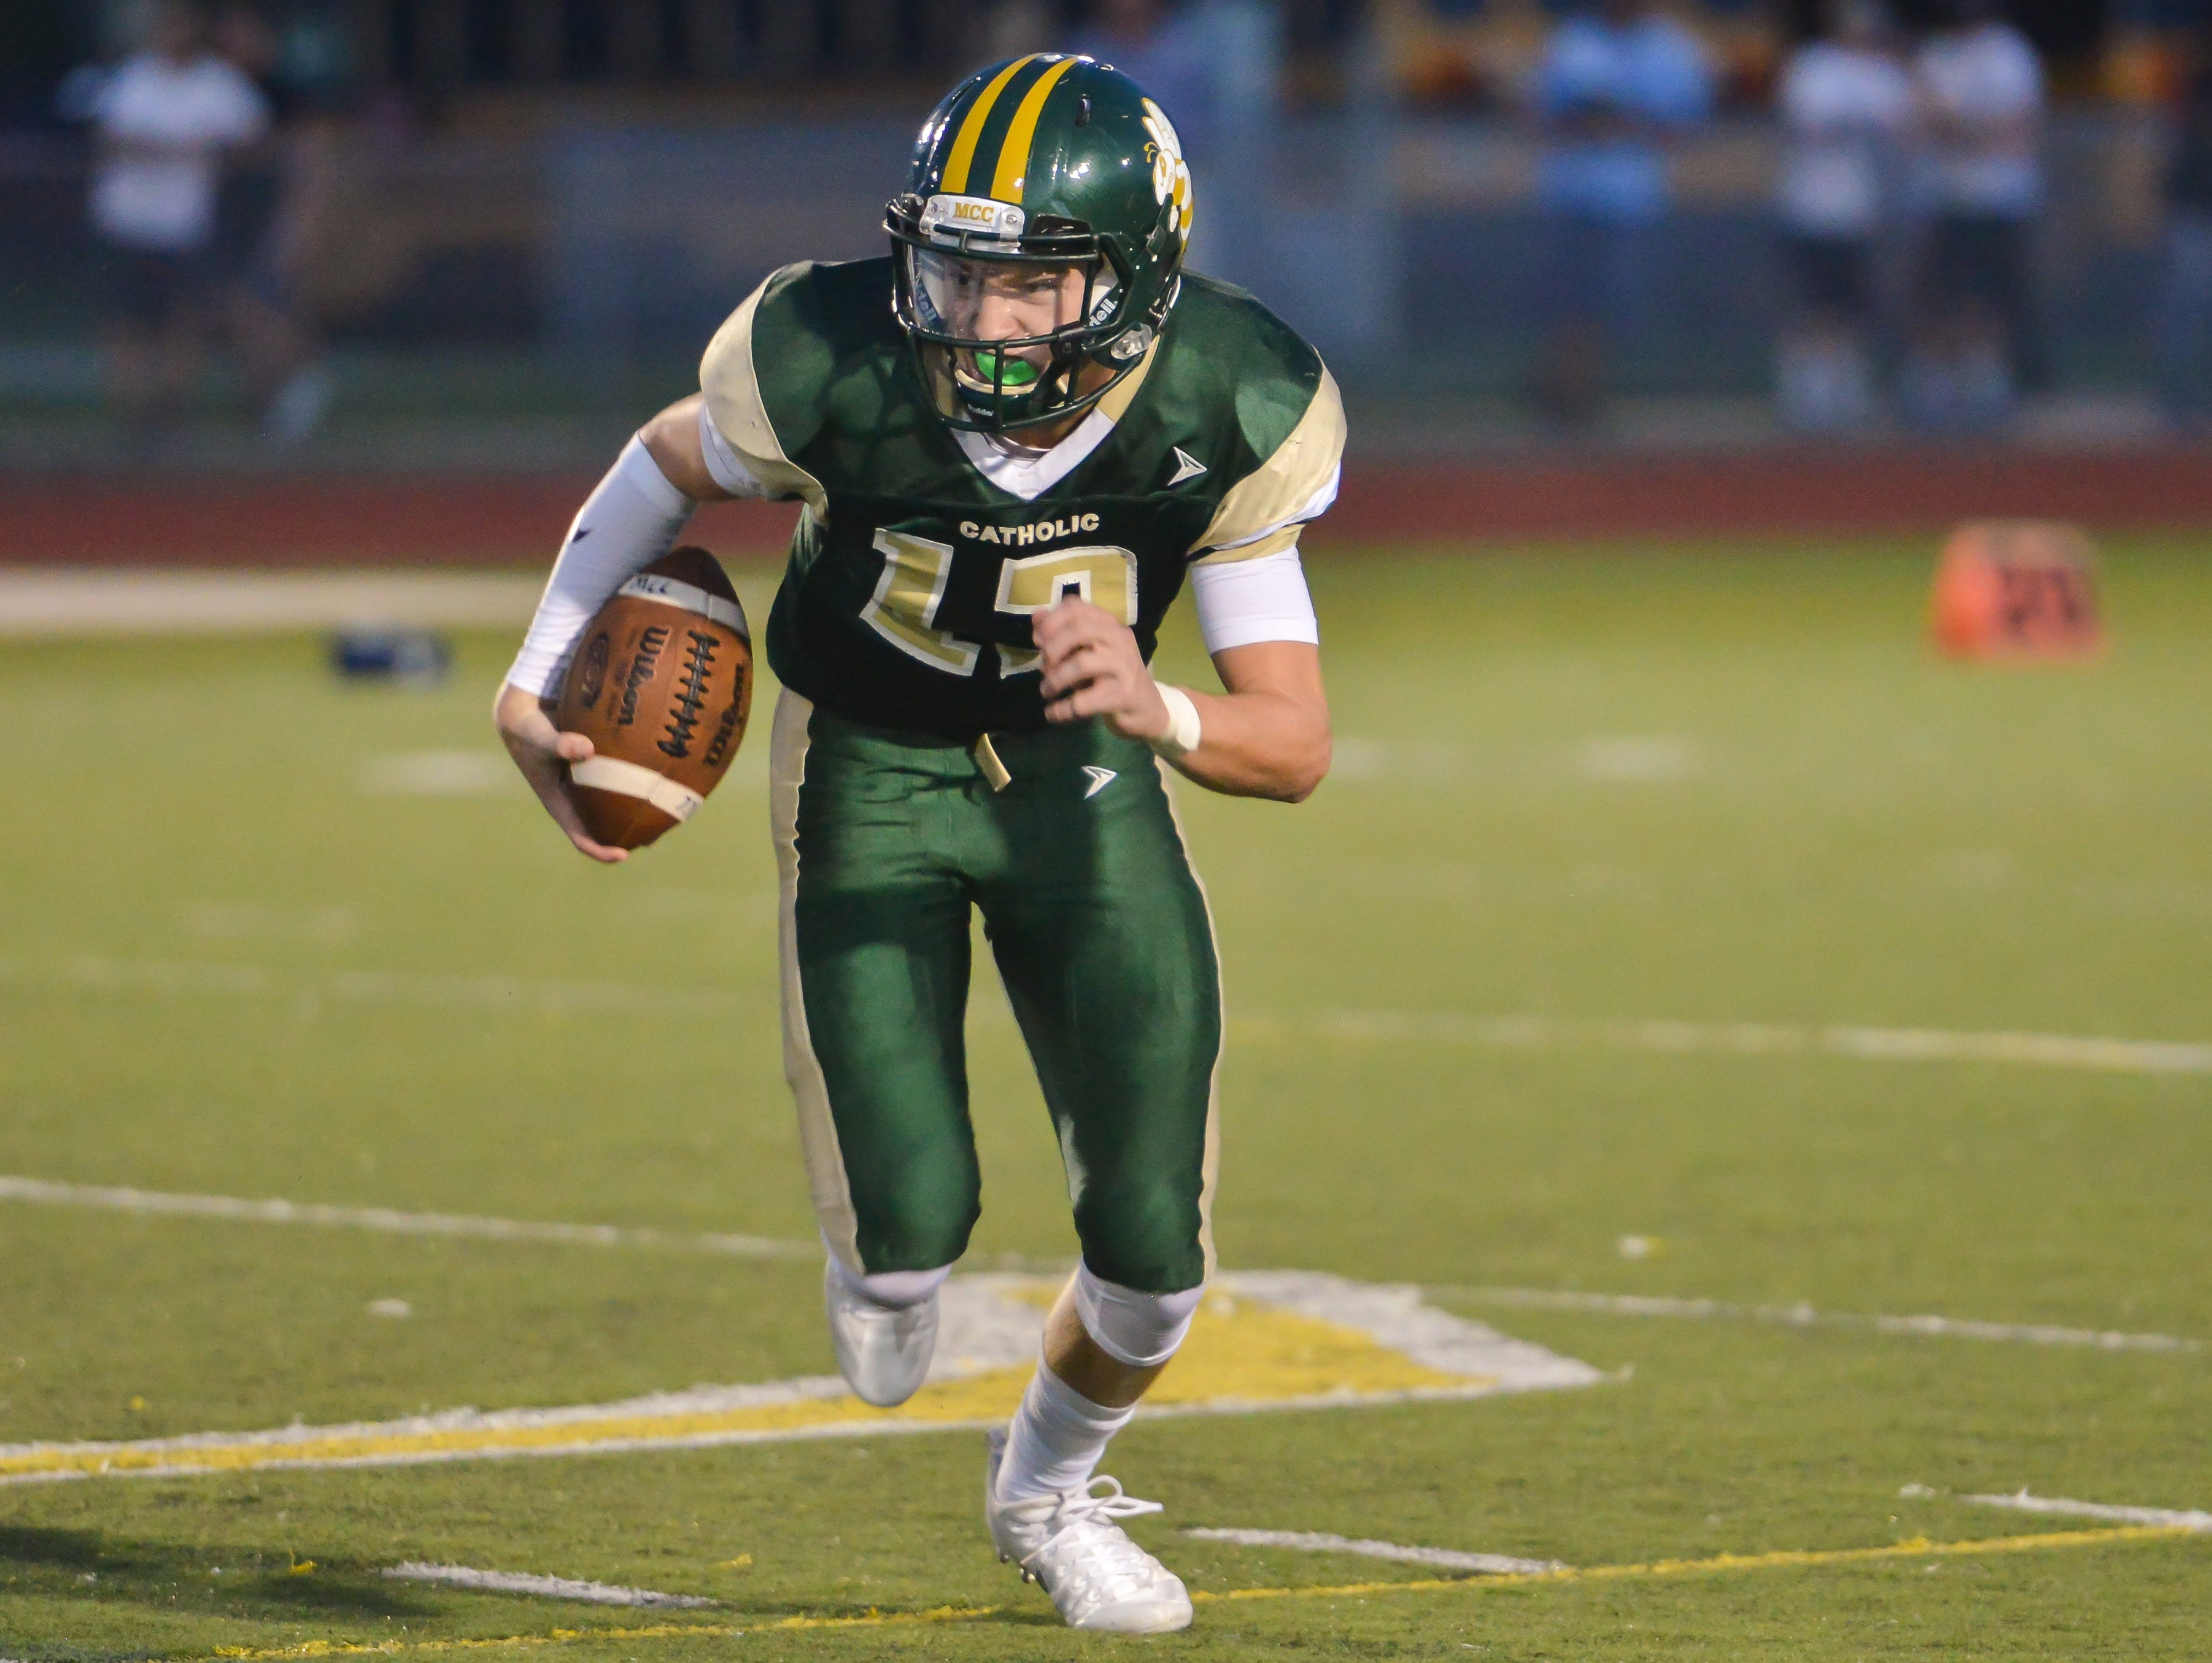 MCC quarterback Joaquin Collazo was voted FLORIDA TODAY's High School Athlete of the Week for Sept. 19-25.